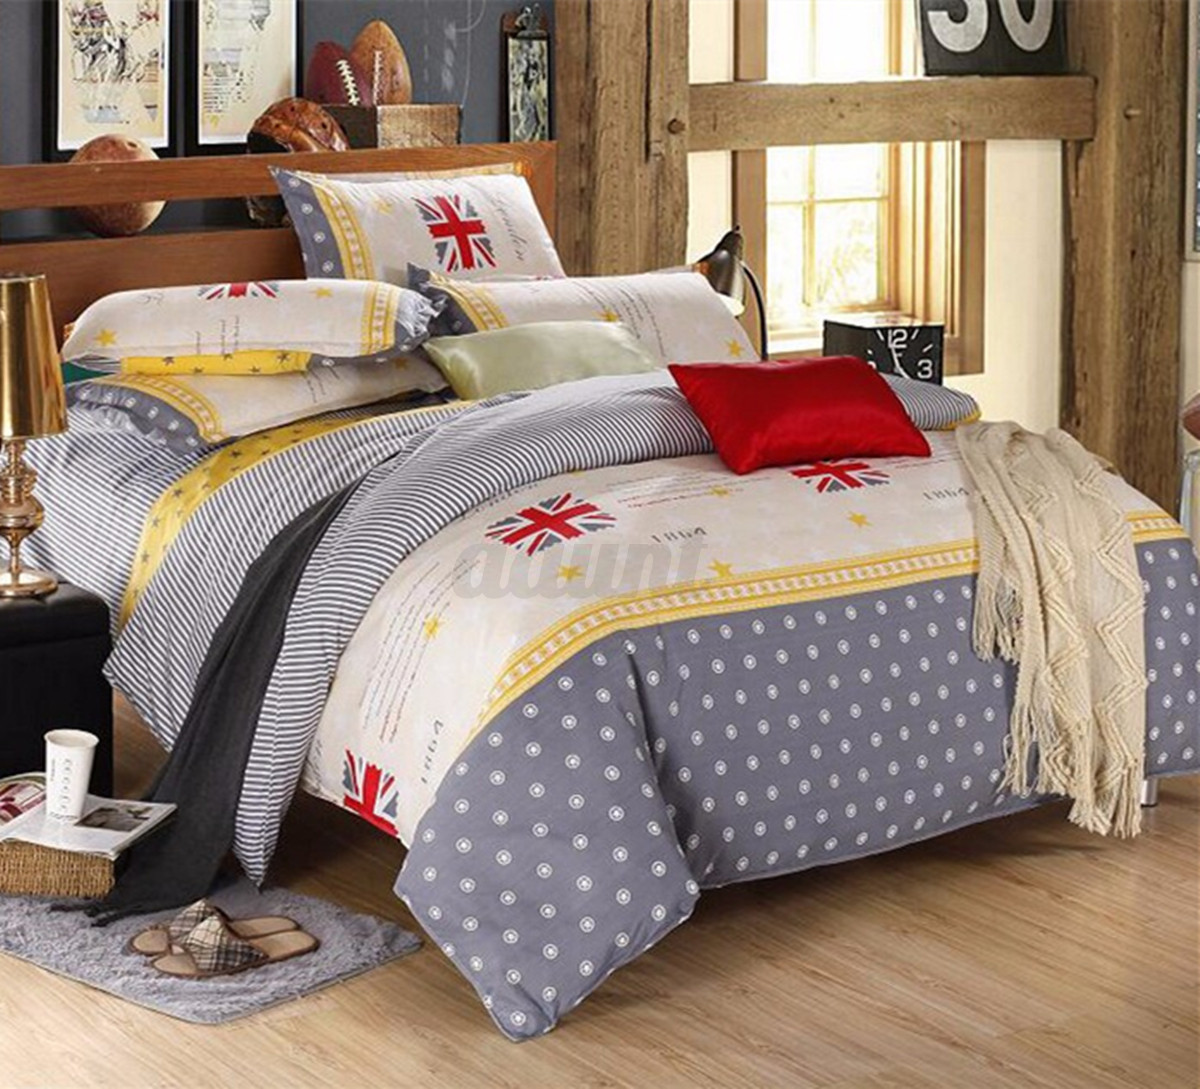 single double queen king size printing style bedding pillowc